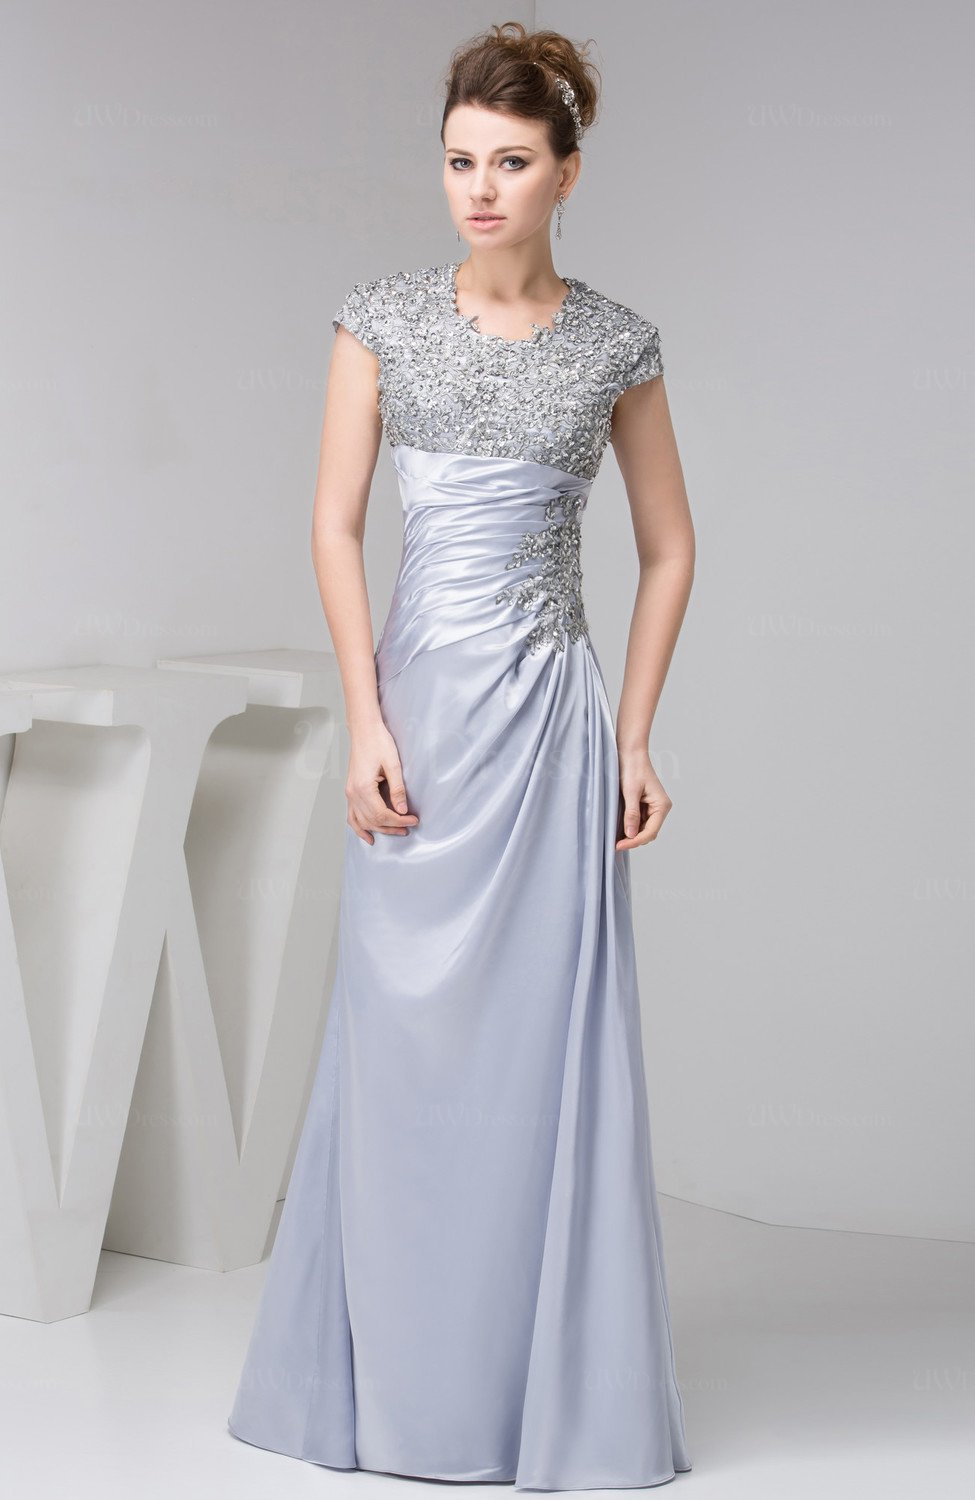 Lavender with Sleeves Evening Dress Long Summer Inexpensive Beaded ...